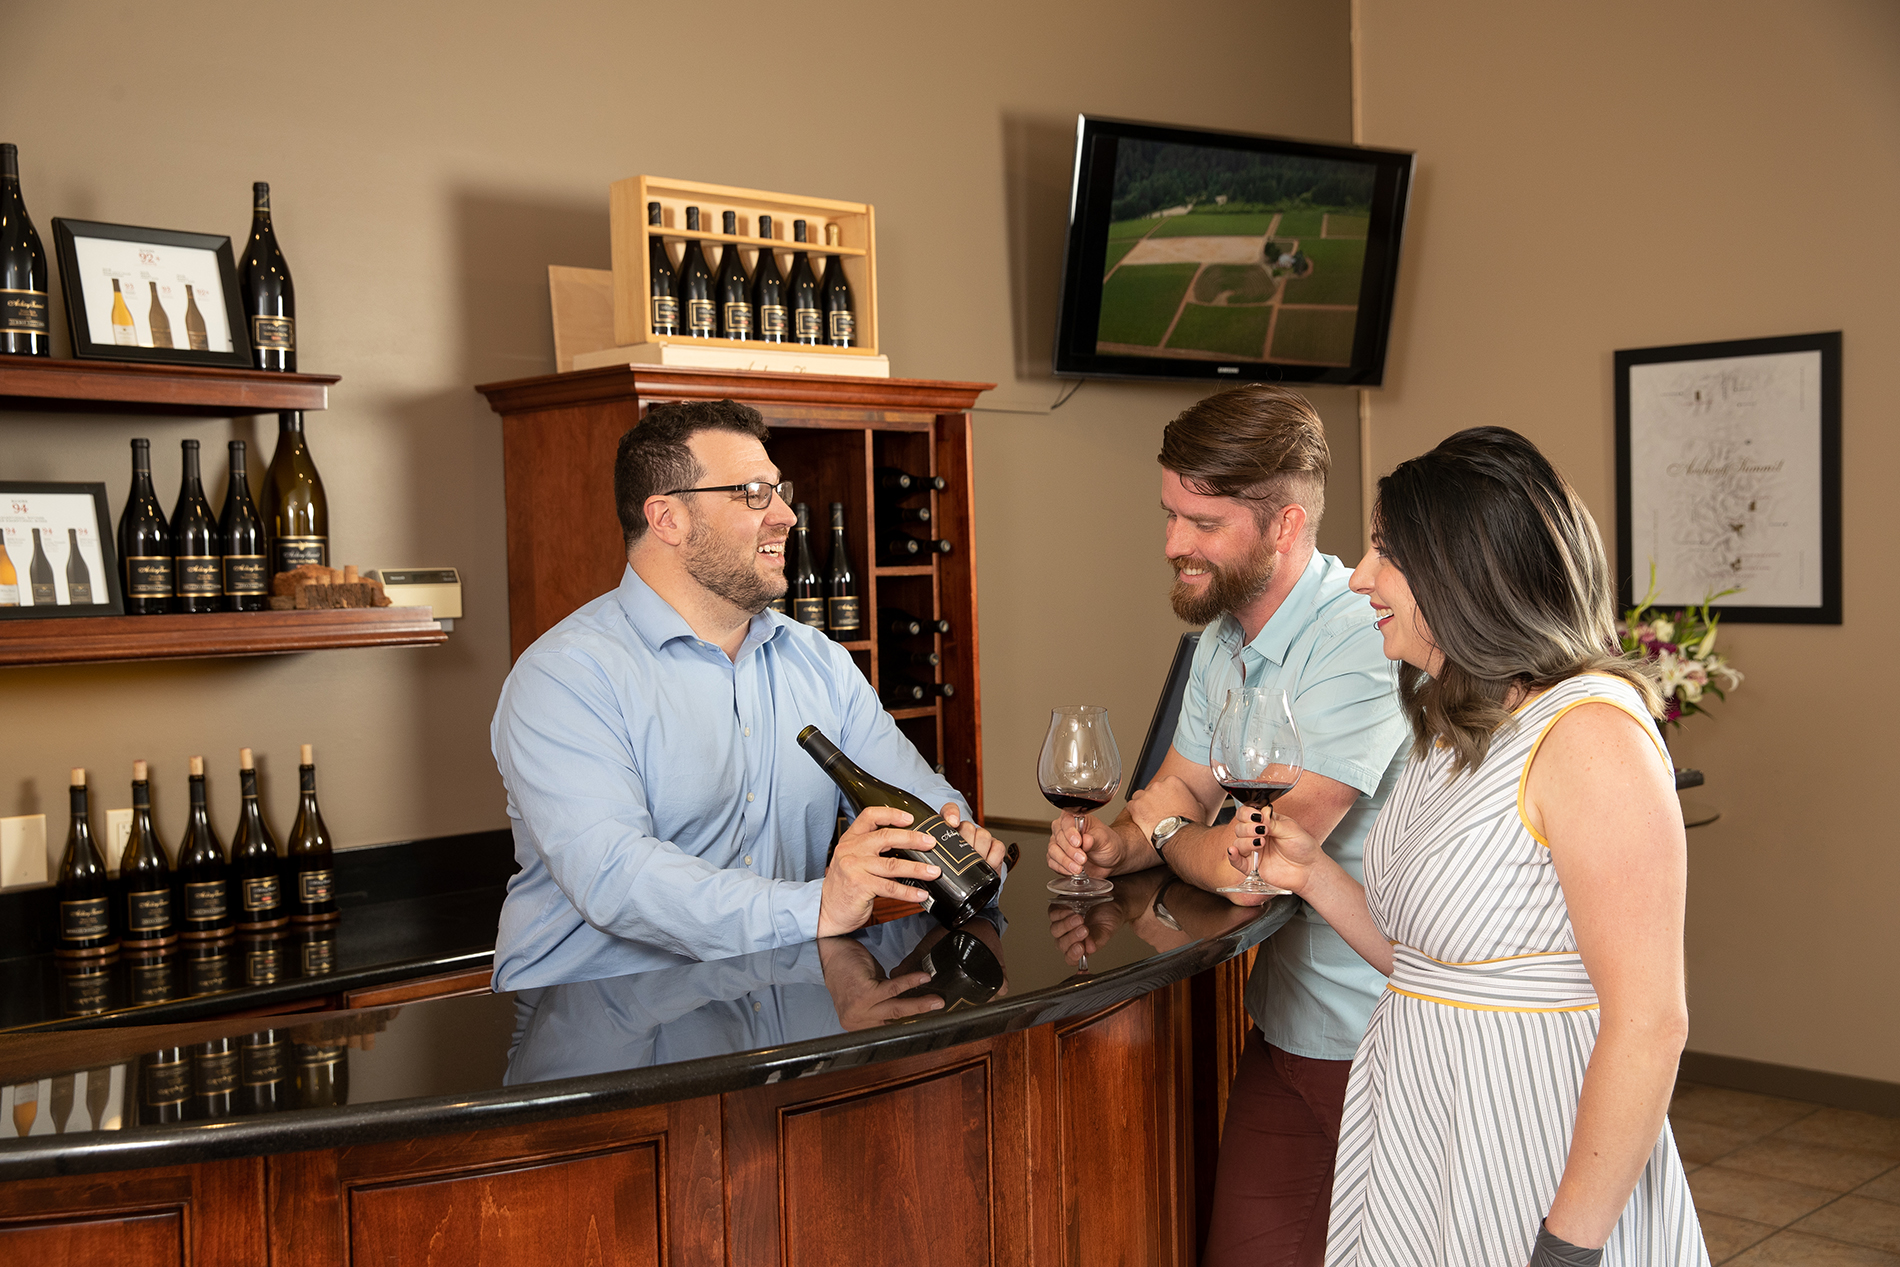 Guests at Tasting Room